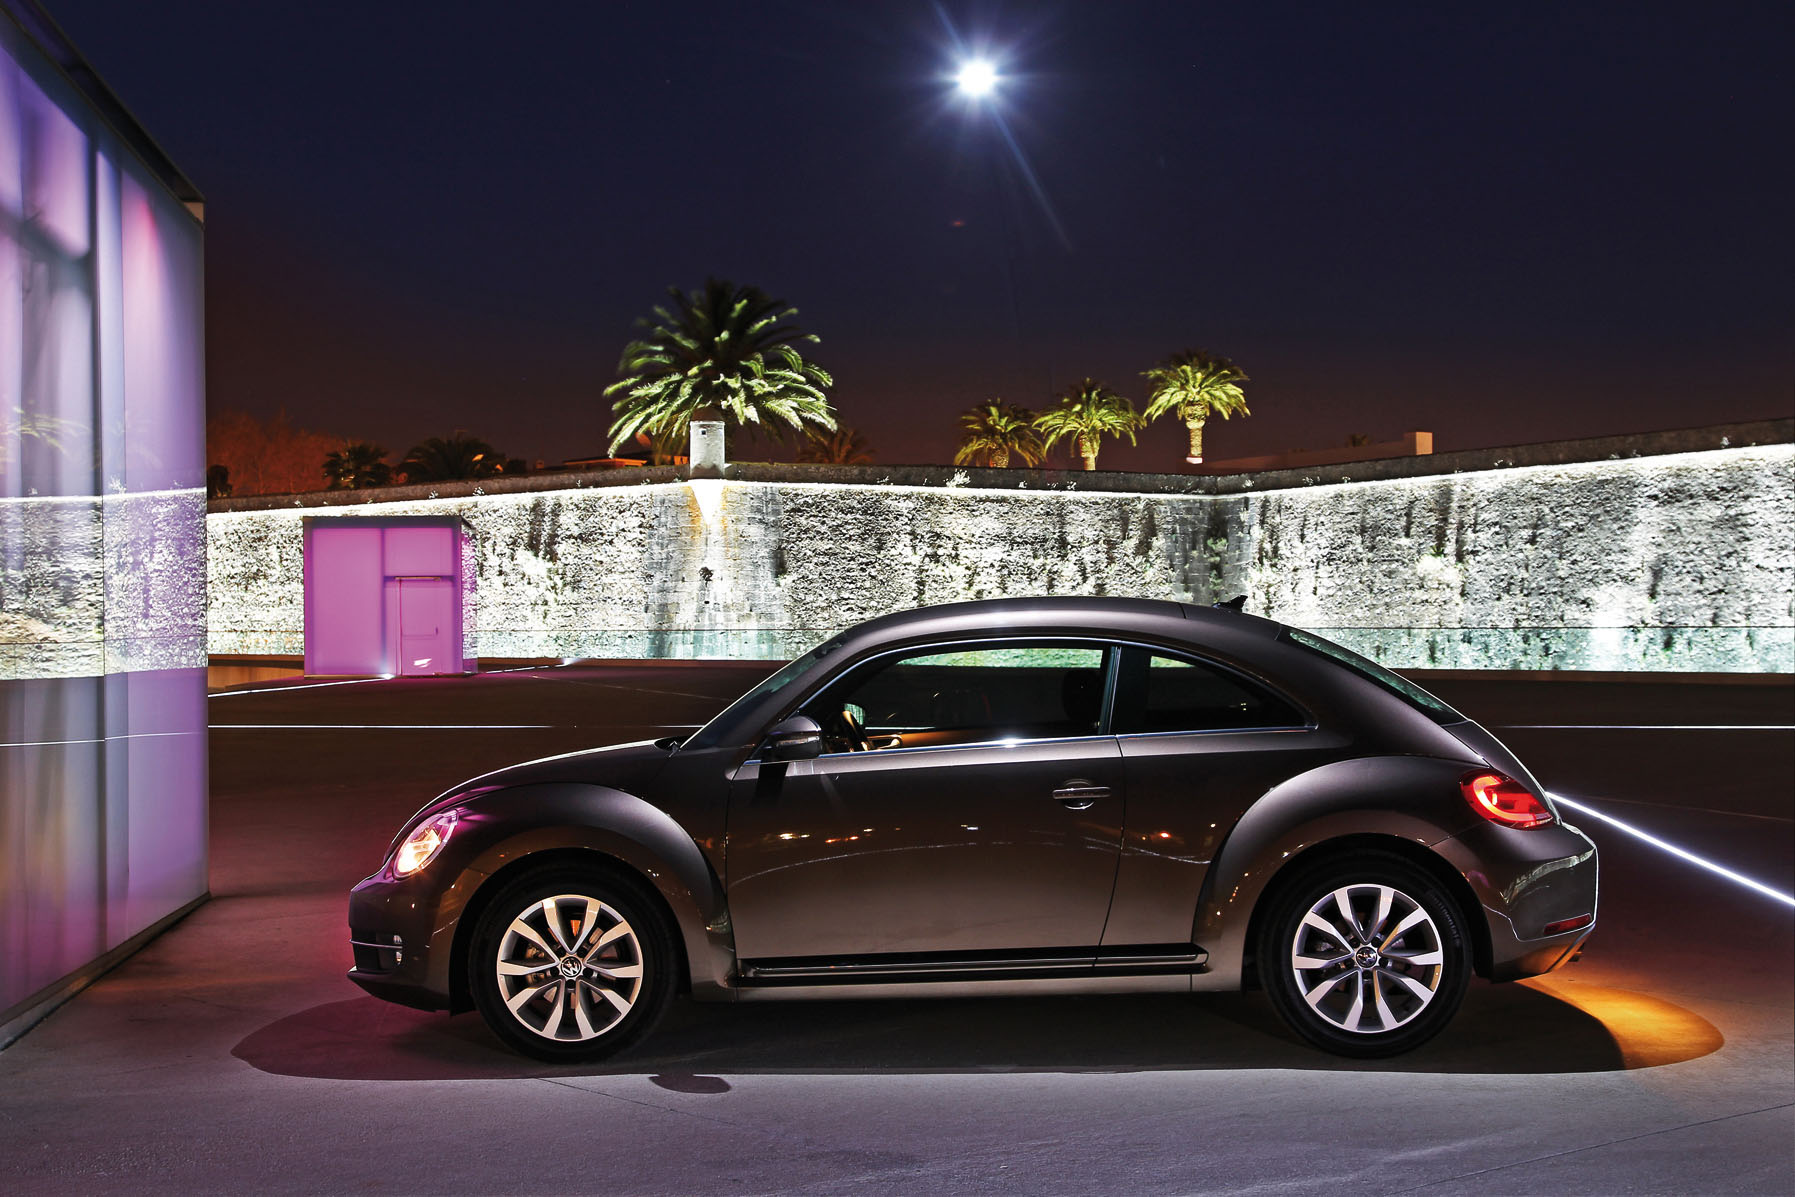 2012 Toffee Brown Volkswagen Beetle Side View - | EuroCar News